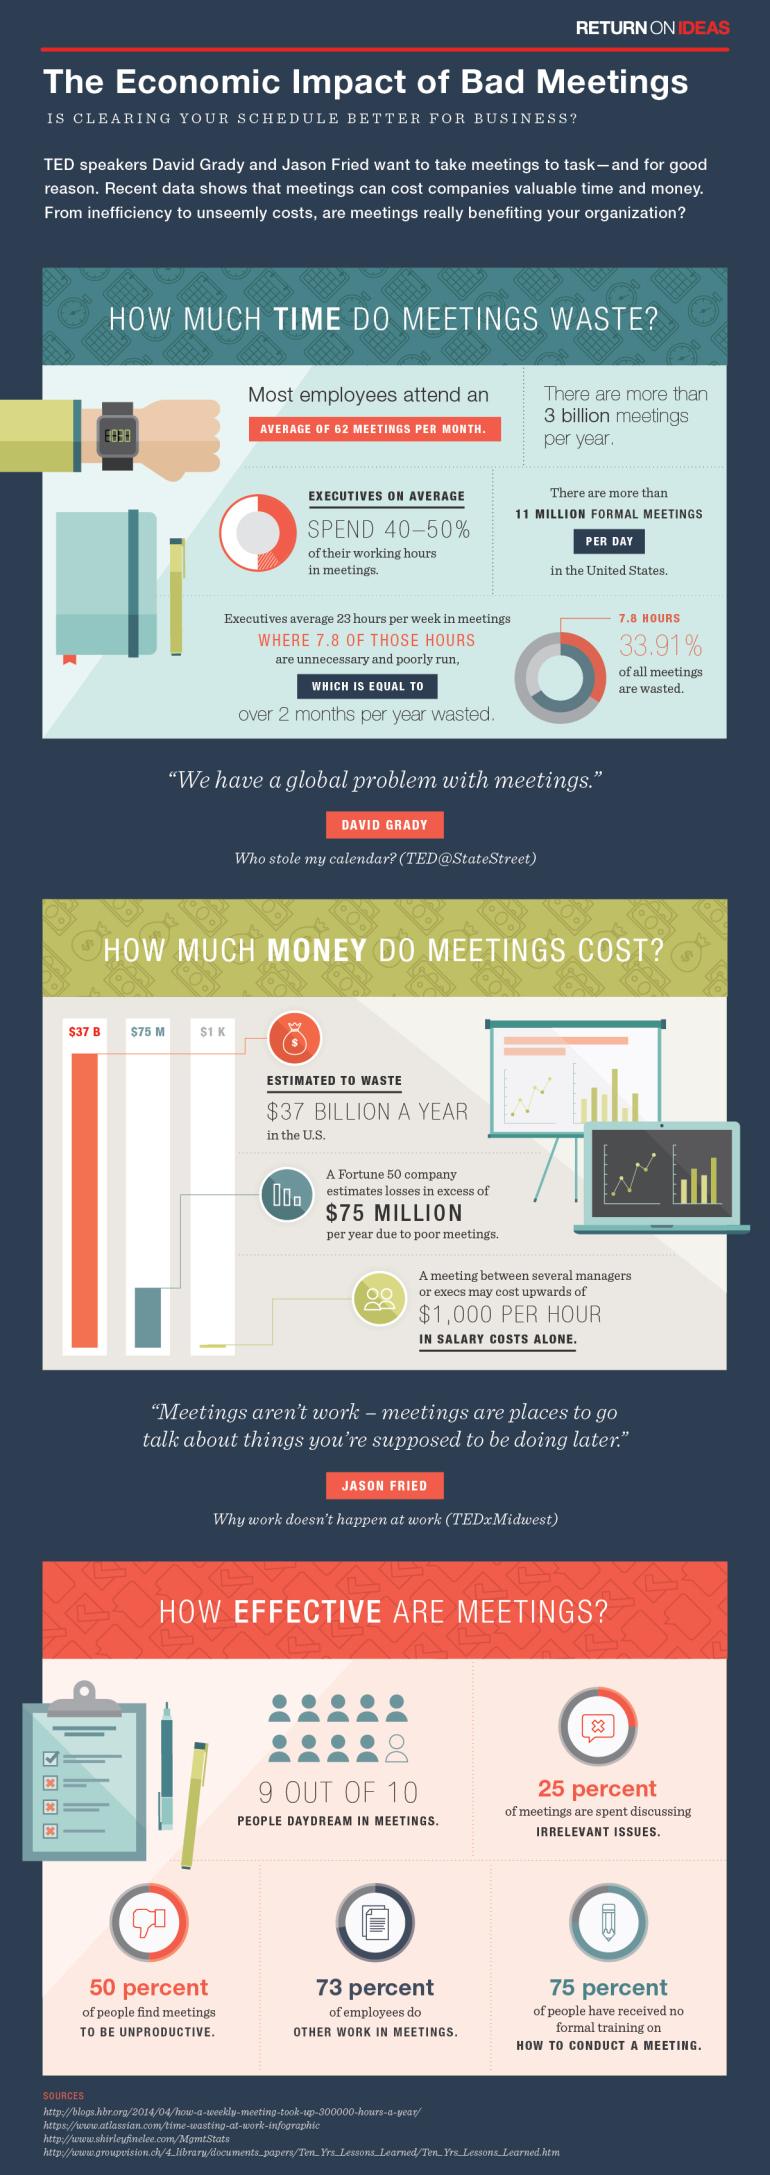 How Big is the Economic Impact of Unproductive Meetings?